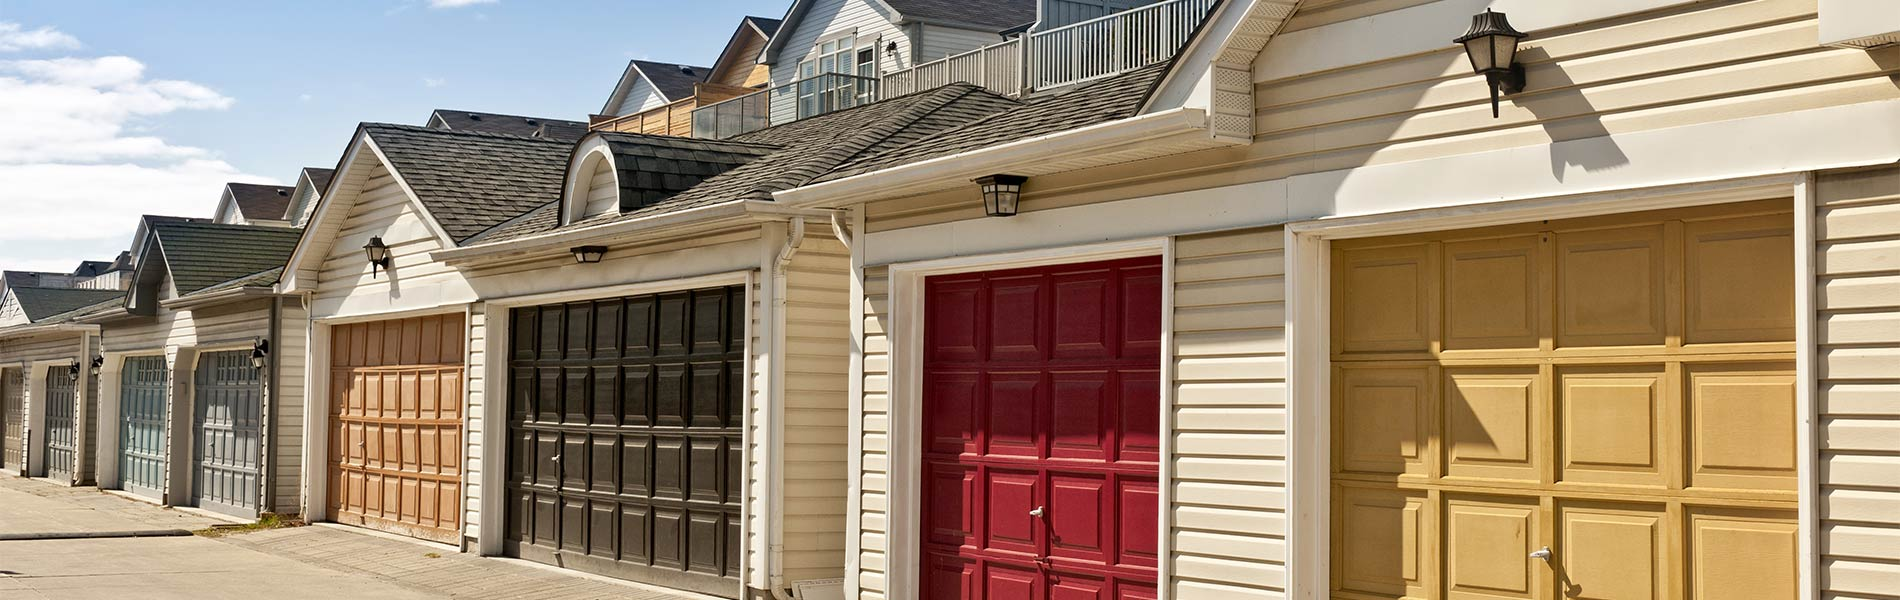 Capitol Garage Doors, Bowie, MD 301-458-8424